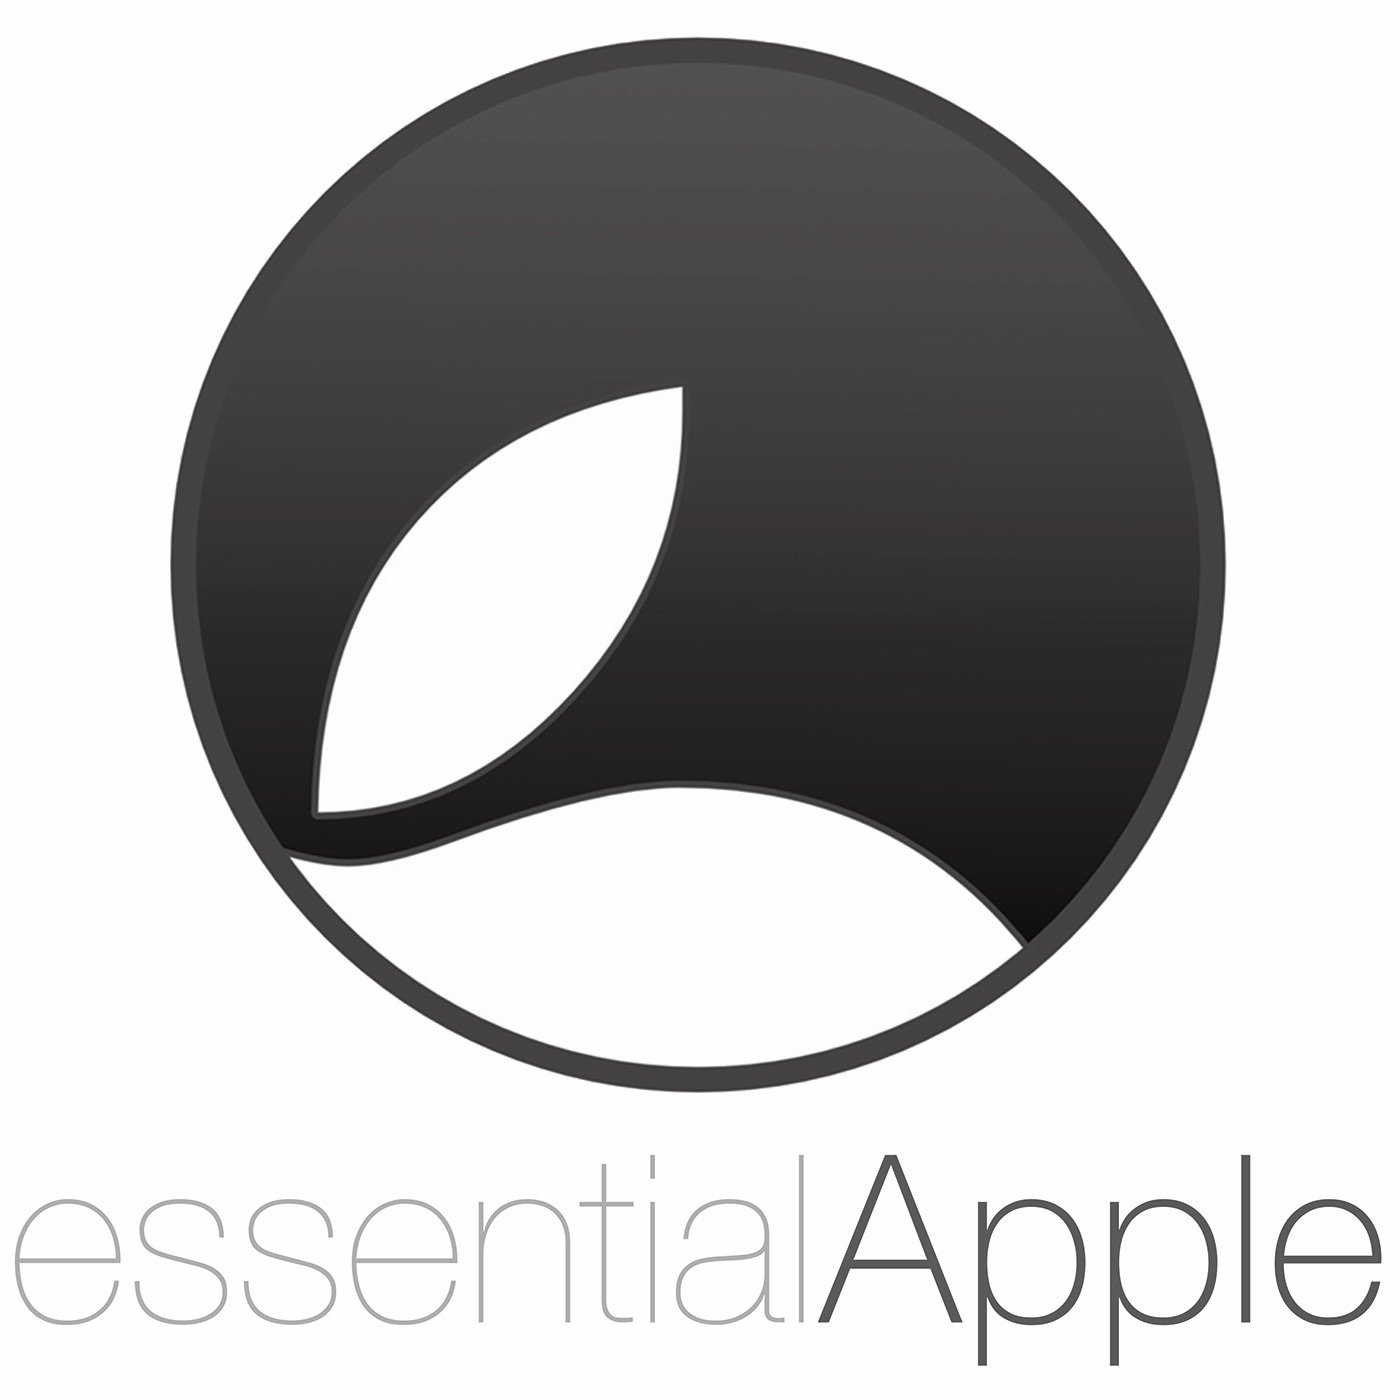 The Essential Apple Show By Essential Apple On Apple Podcasts